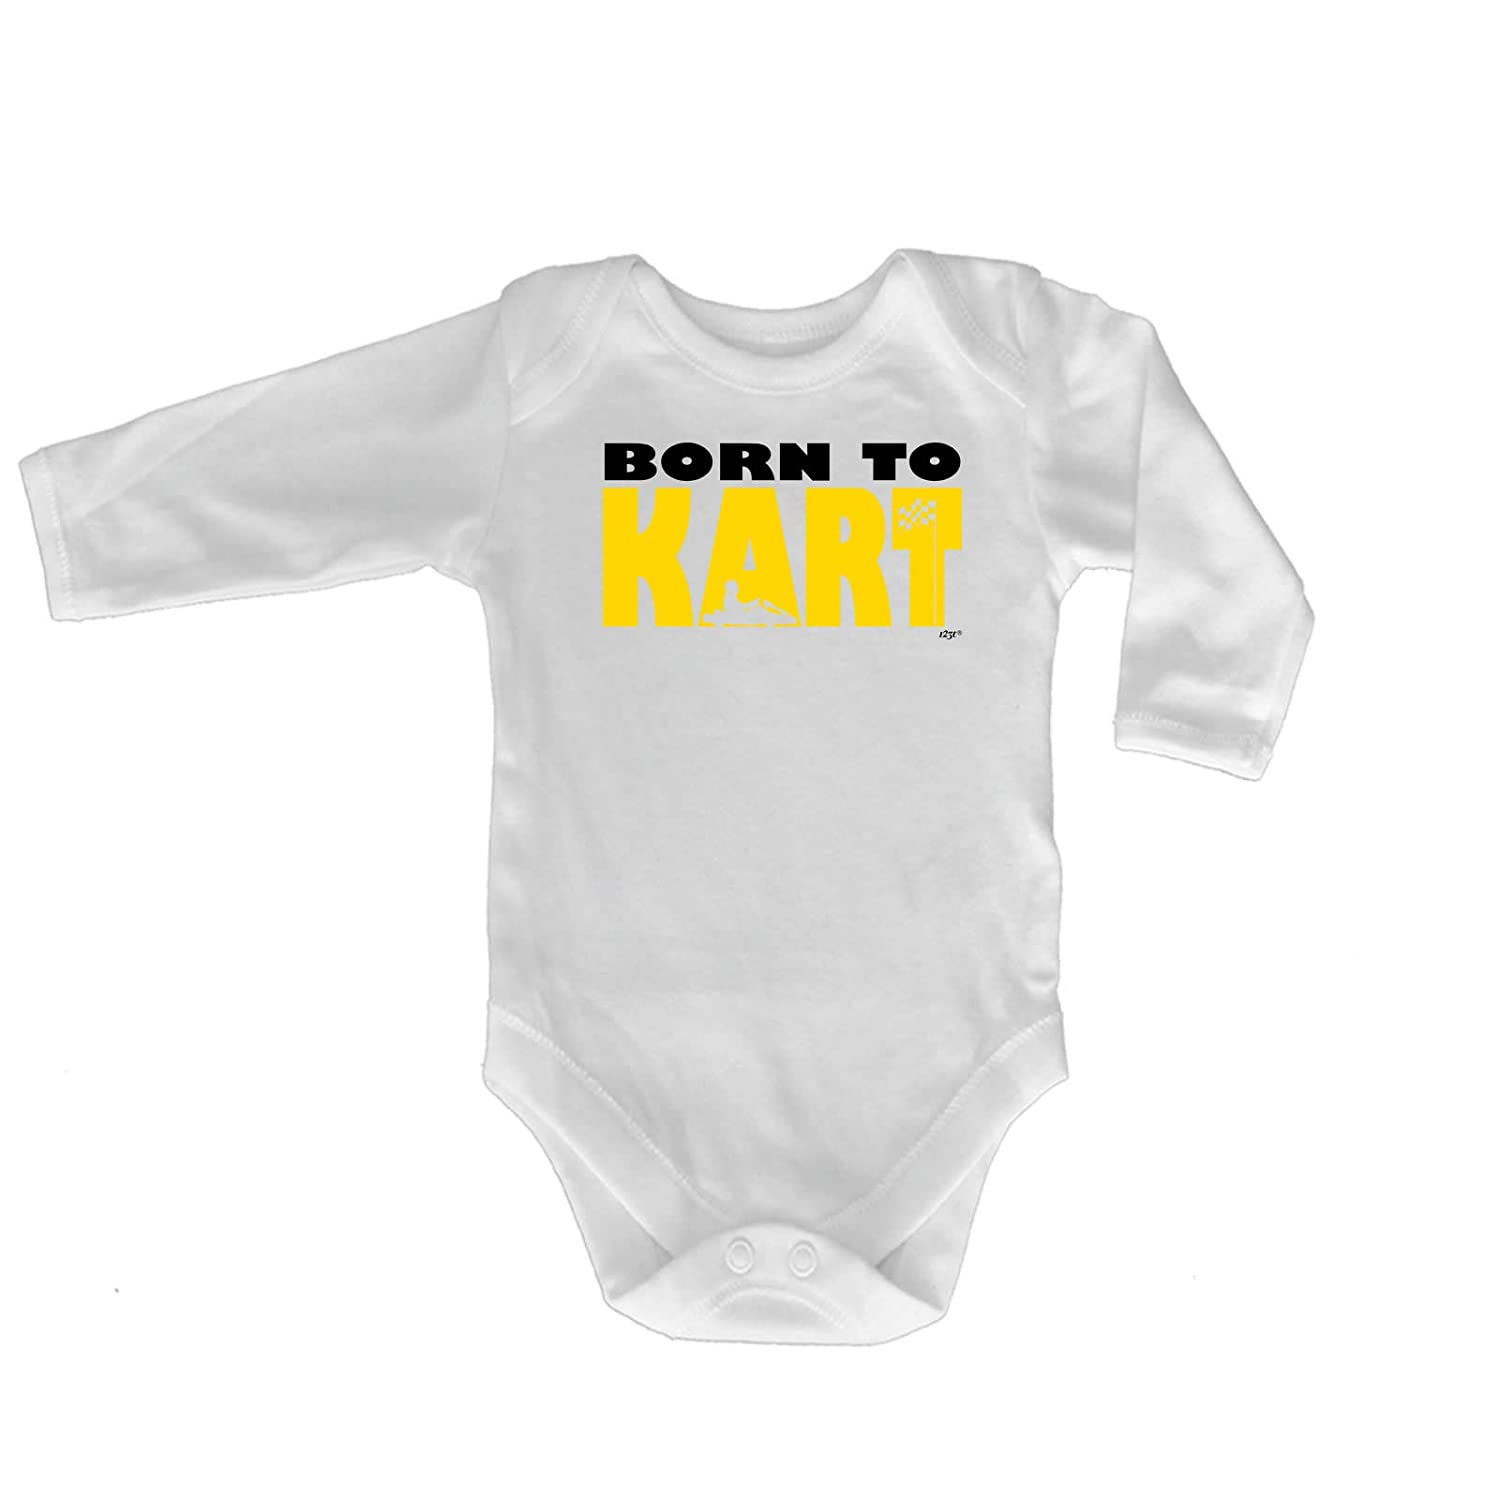 123t Funny Babygrow - Jumpsuit Romper Pajamas Gifts Gift Novelty Babygrows Brand 568